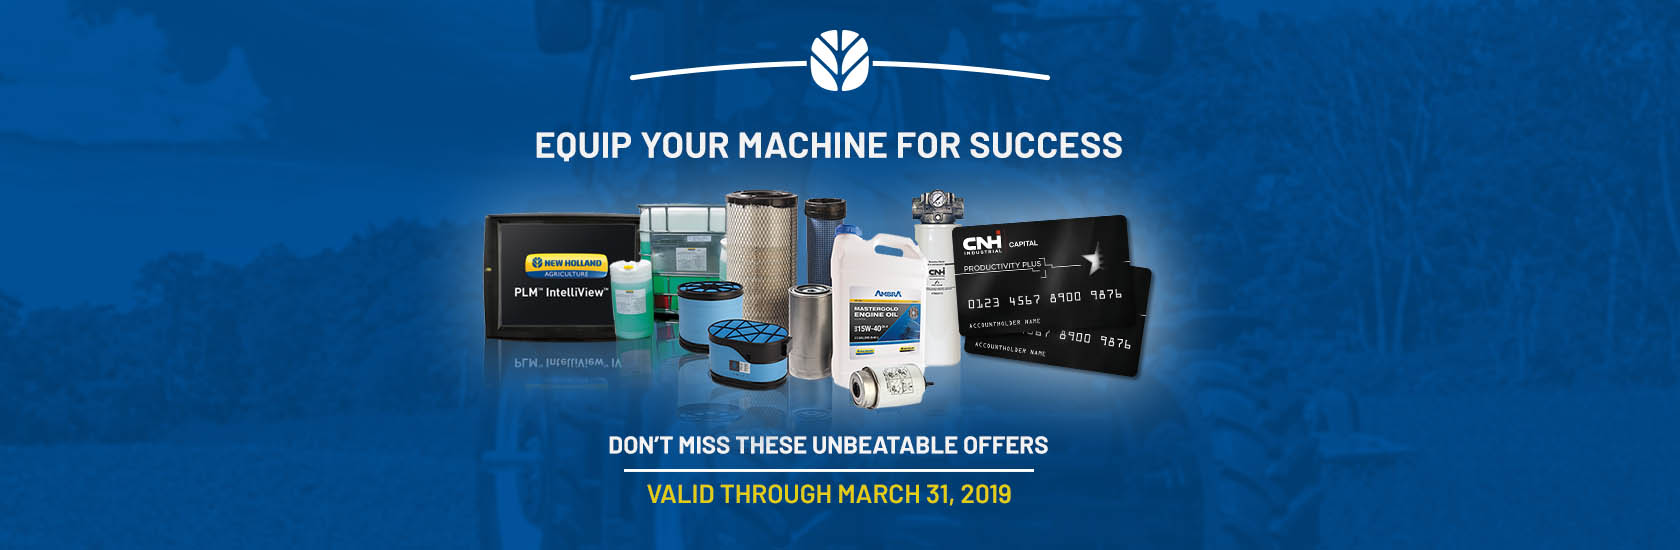 EQUIP YOUR MACHINE FOR SUCCESS